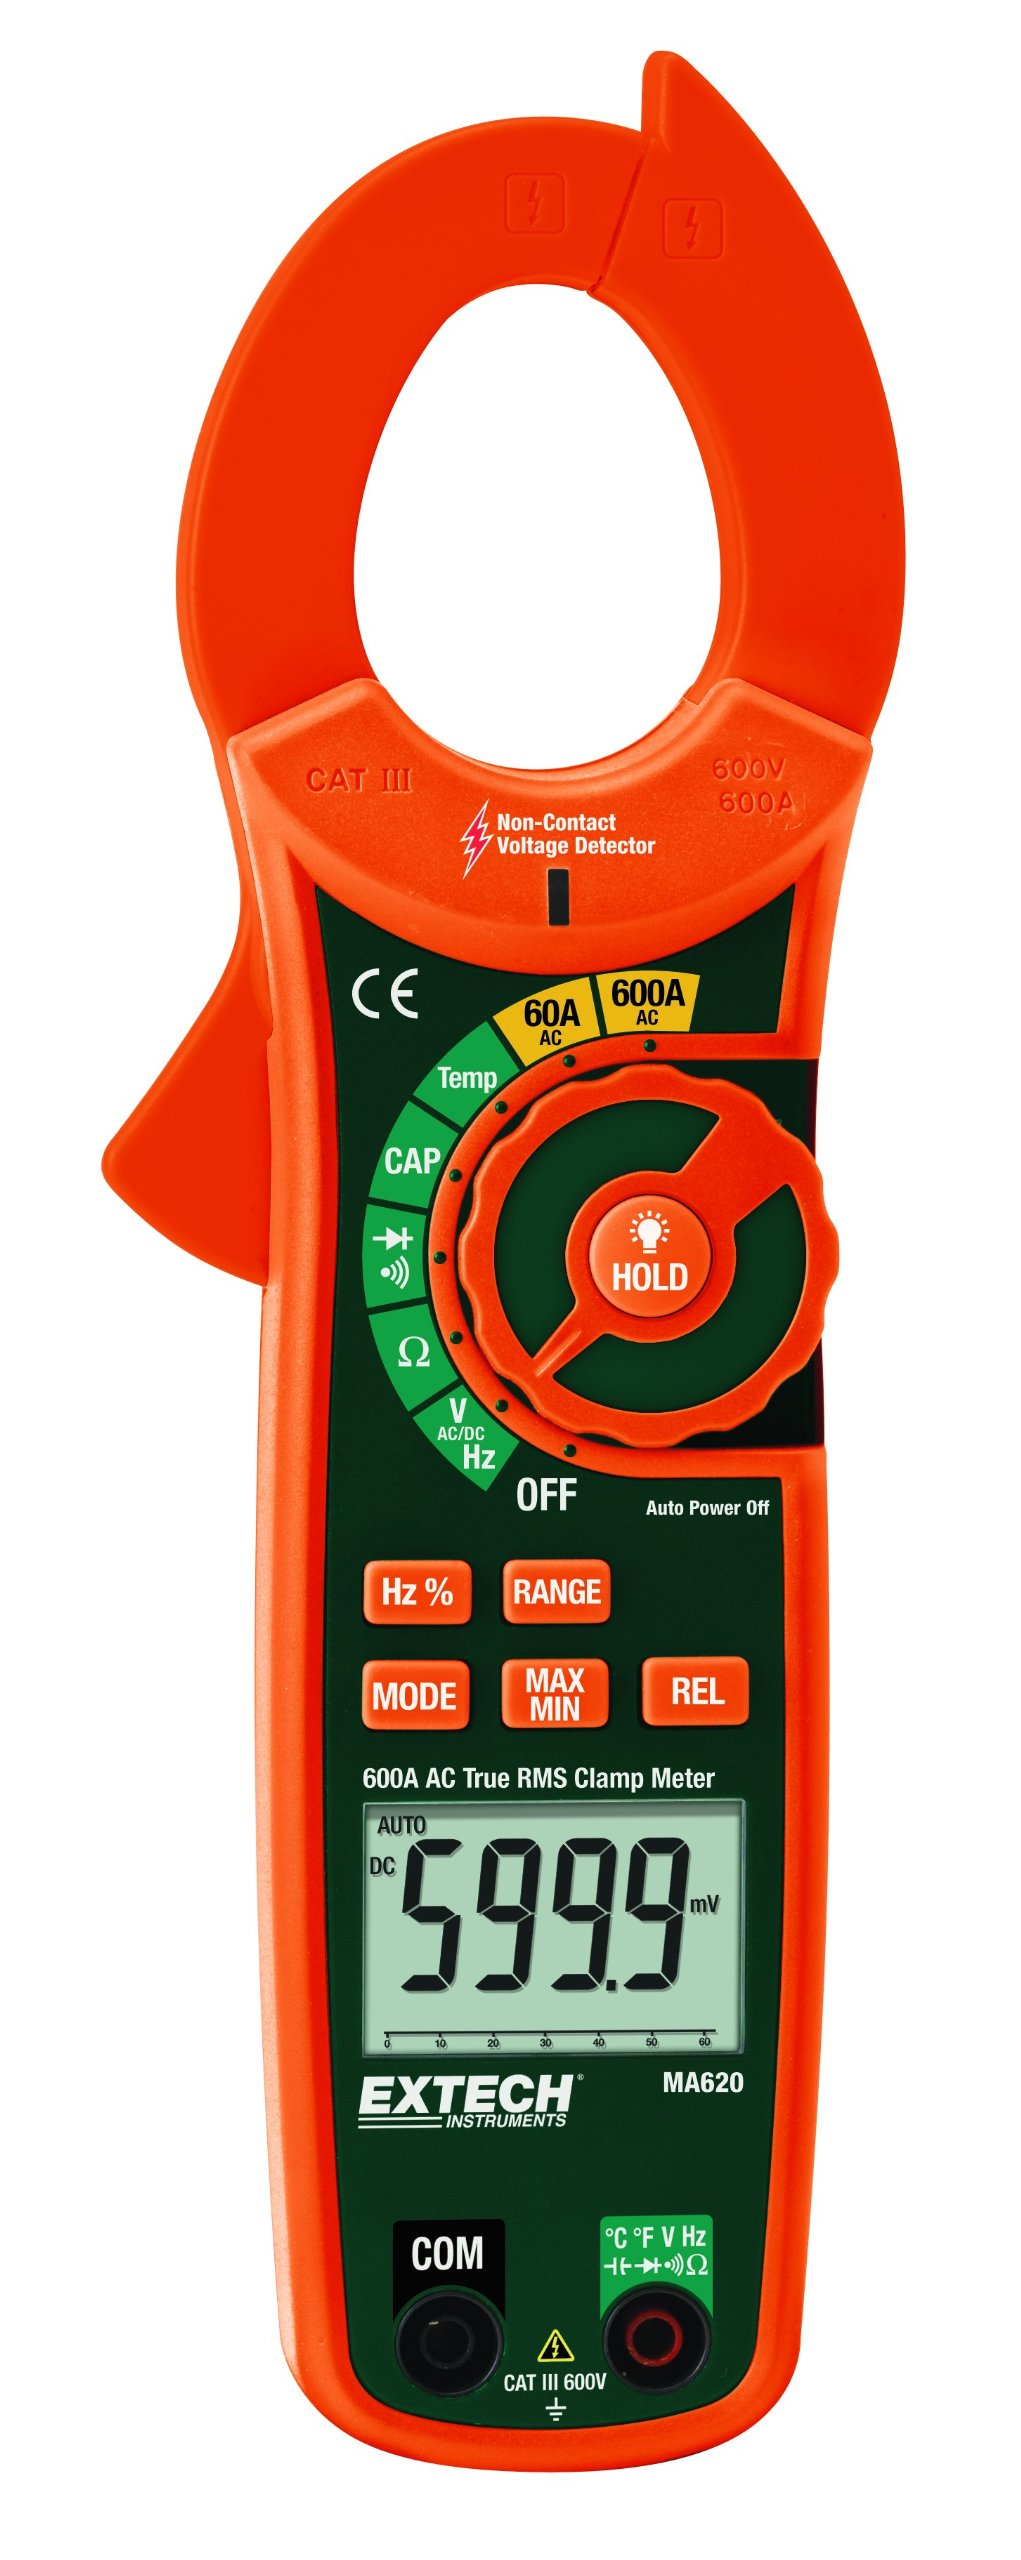 Extech MA620 True RMS 600A AC Clamp Meter with NCV Detector